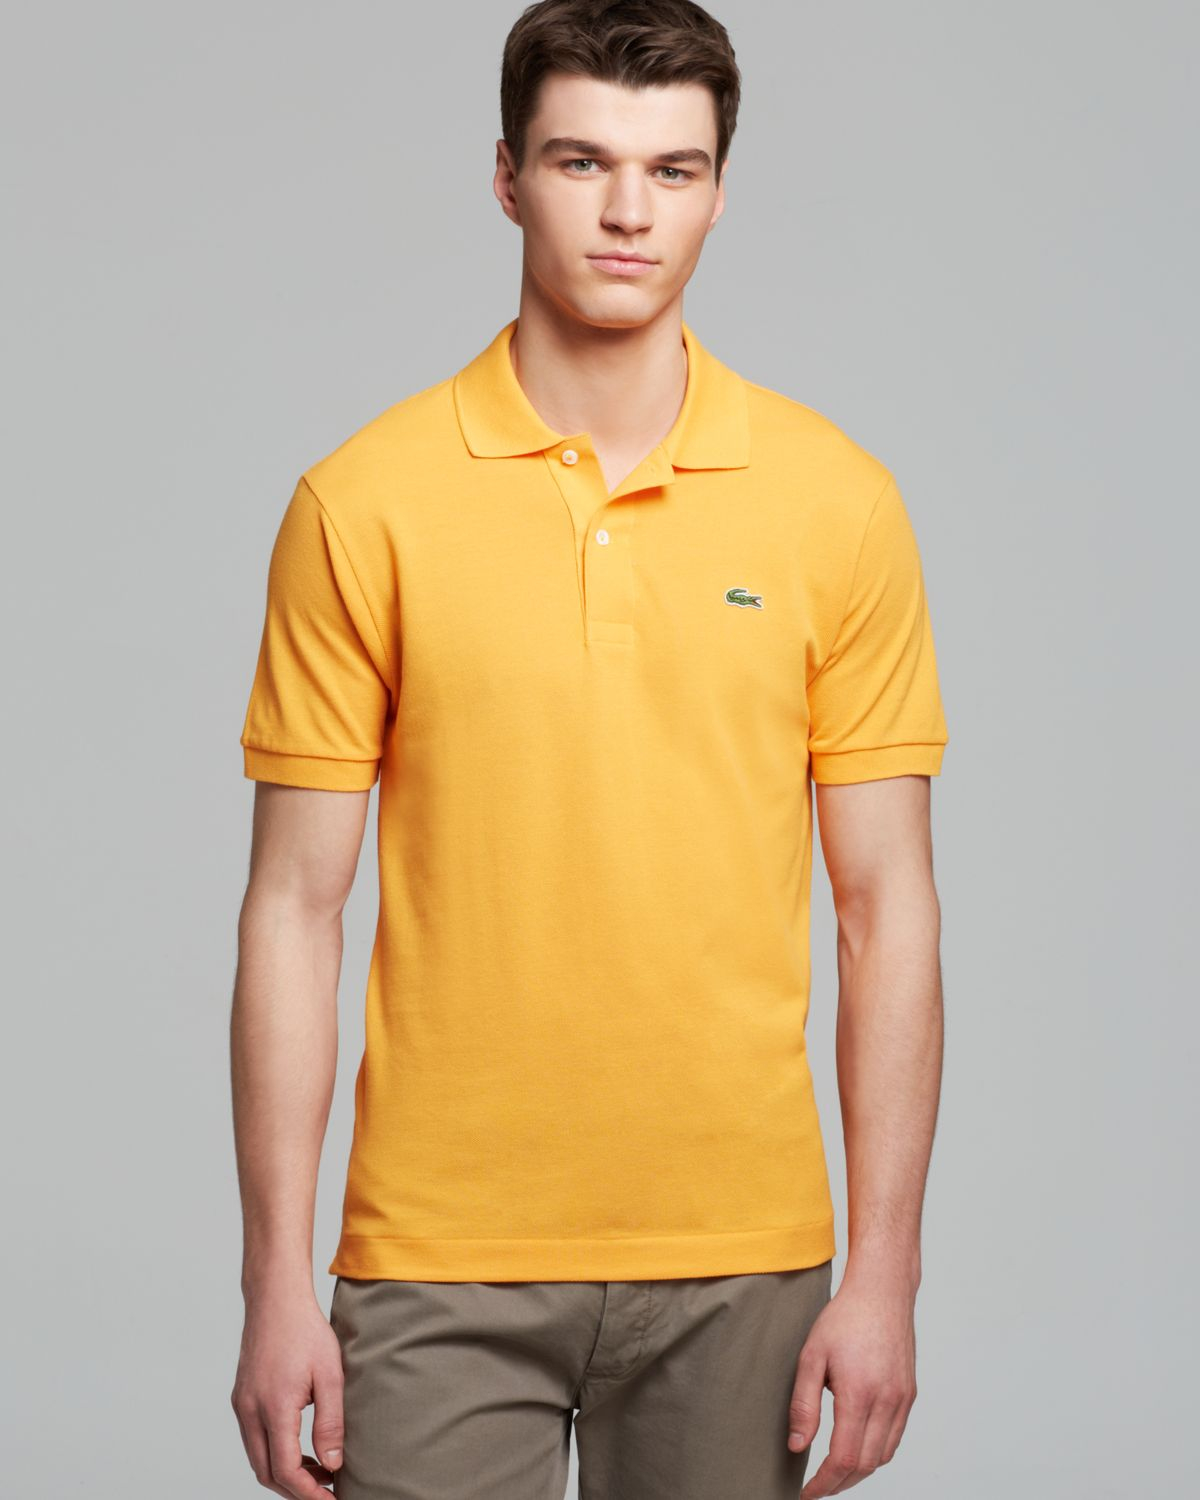 Lacoste Classic Short Sleeve Pique Polo Shirt In Yellow